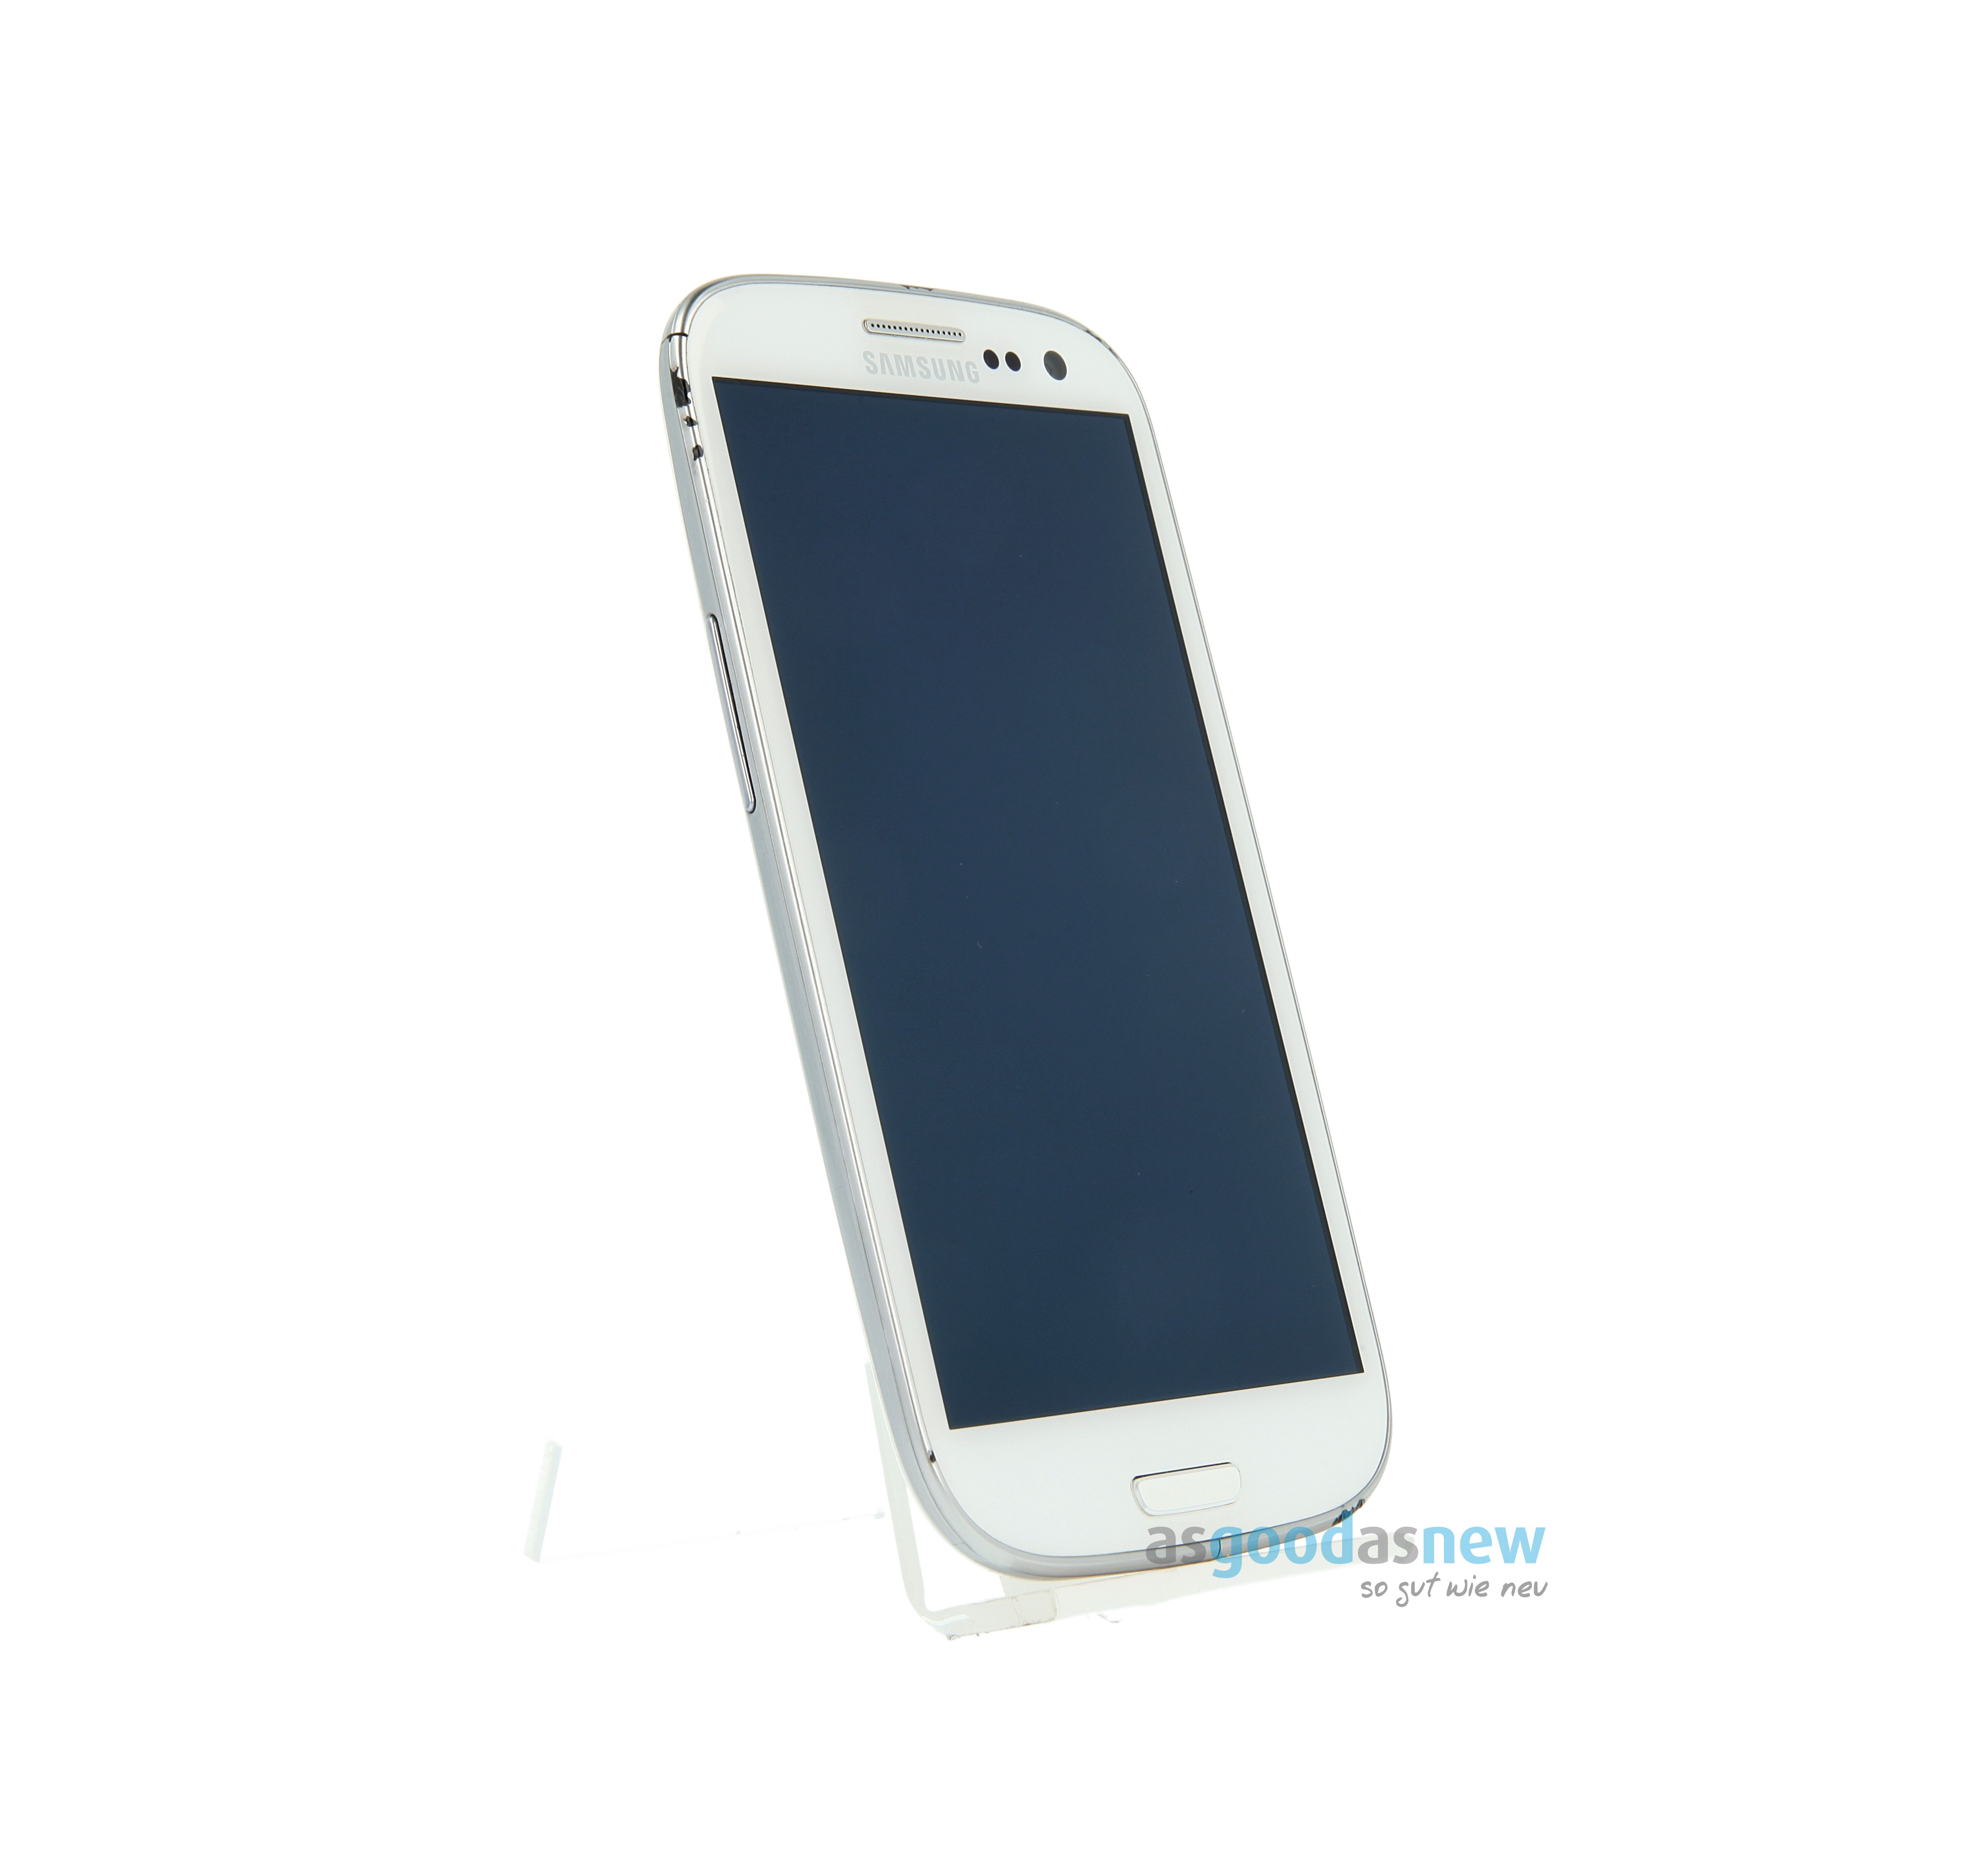 samsung galaxy s3 lte gt i9305 16 gb marble white 8 mp kamera id084 ebay. Black Bedroom Furniture Sets. Home Design Ideas